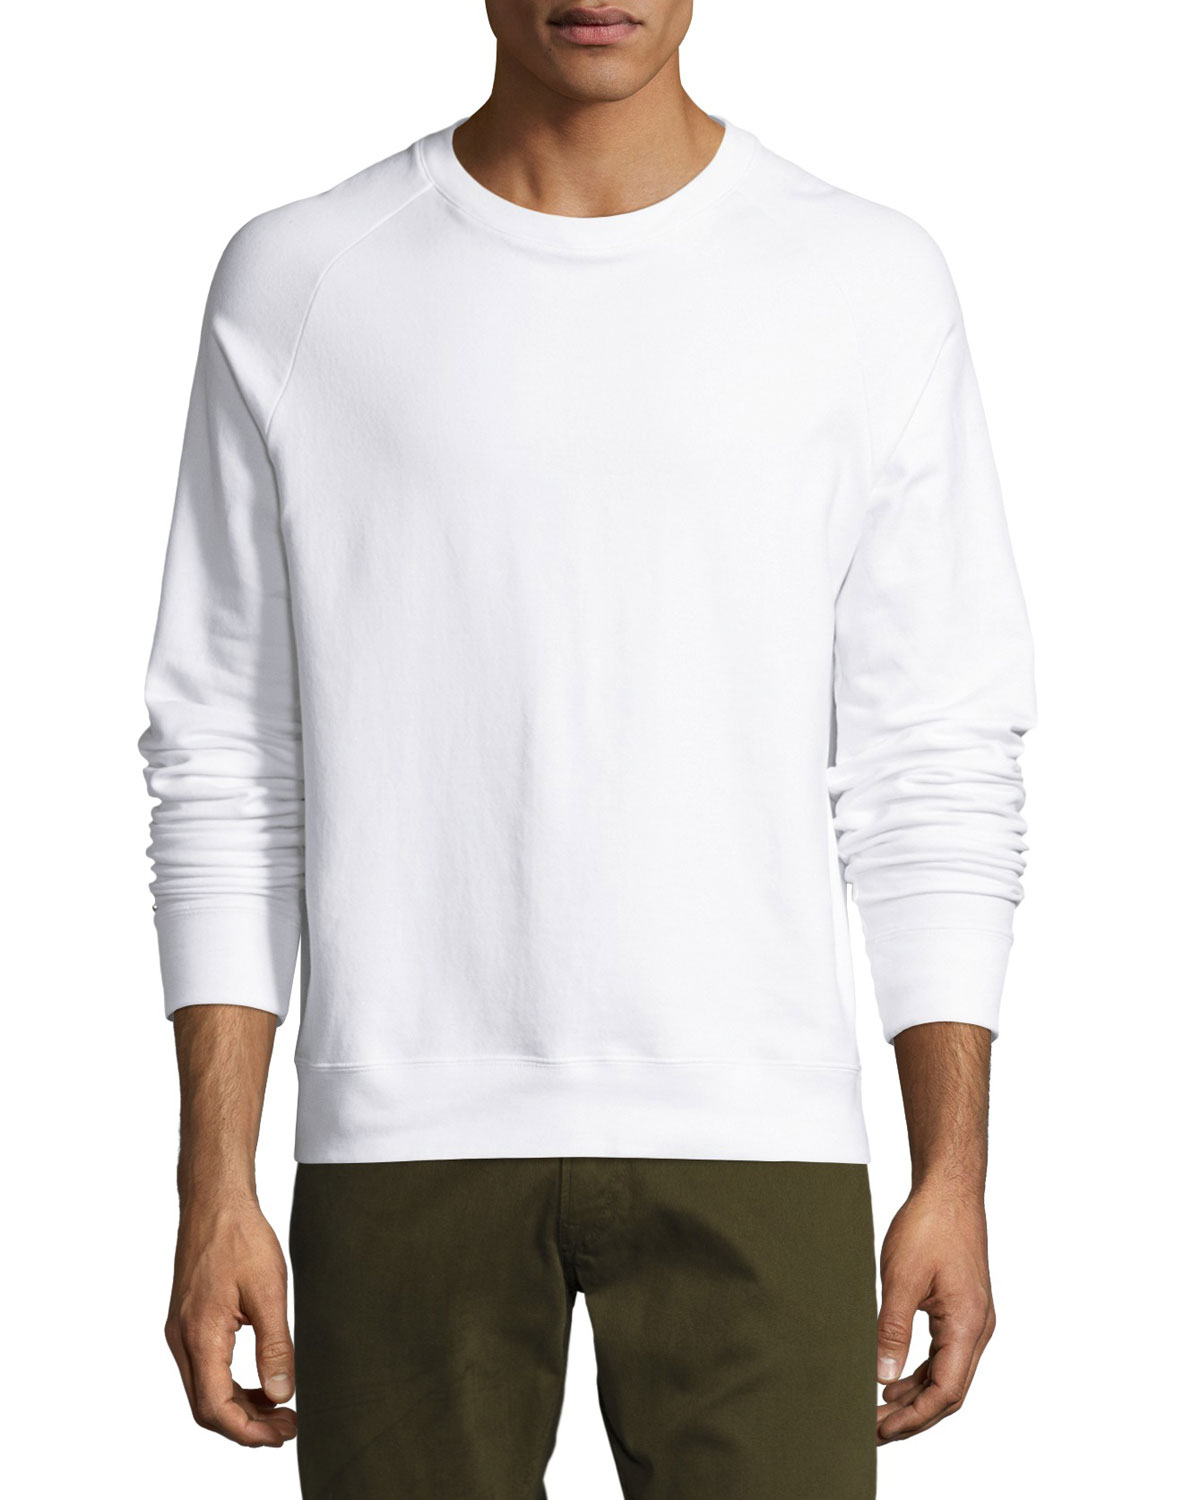 Pima Cotton Sweatshirt, White